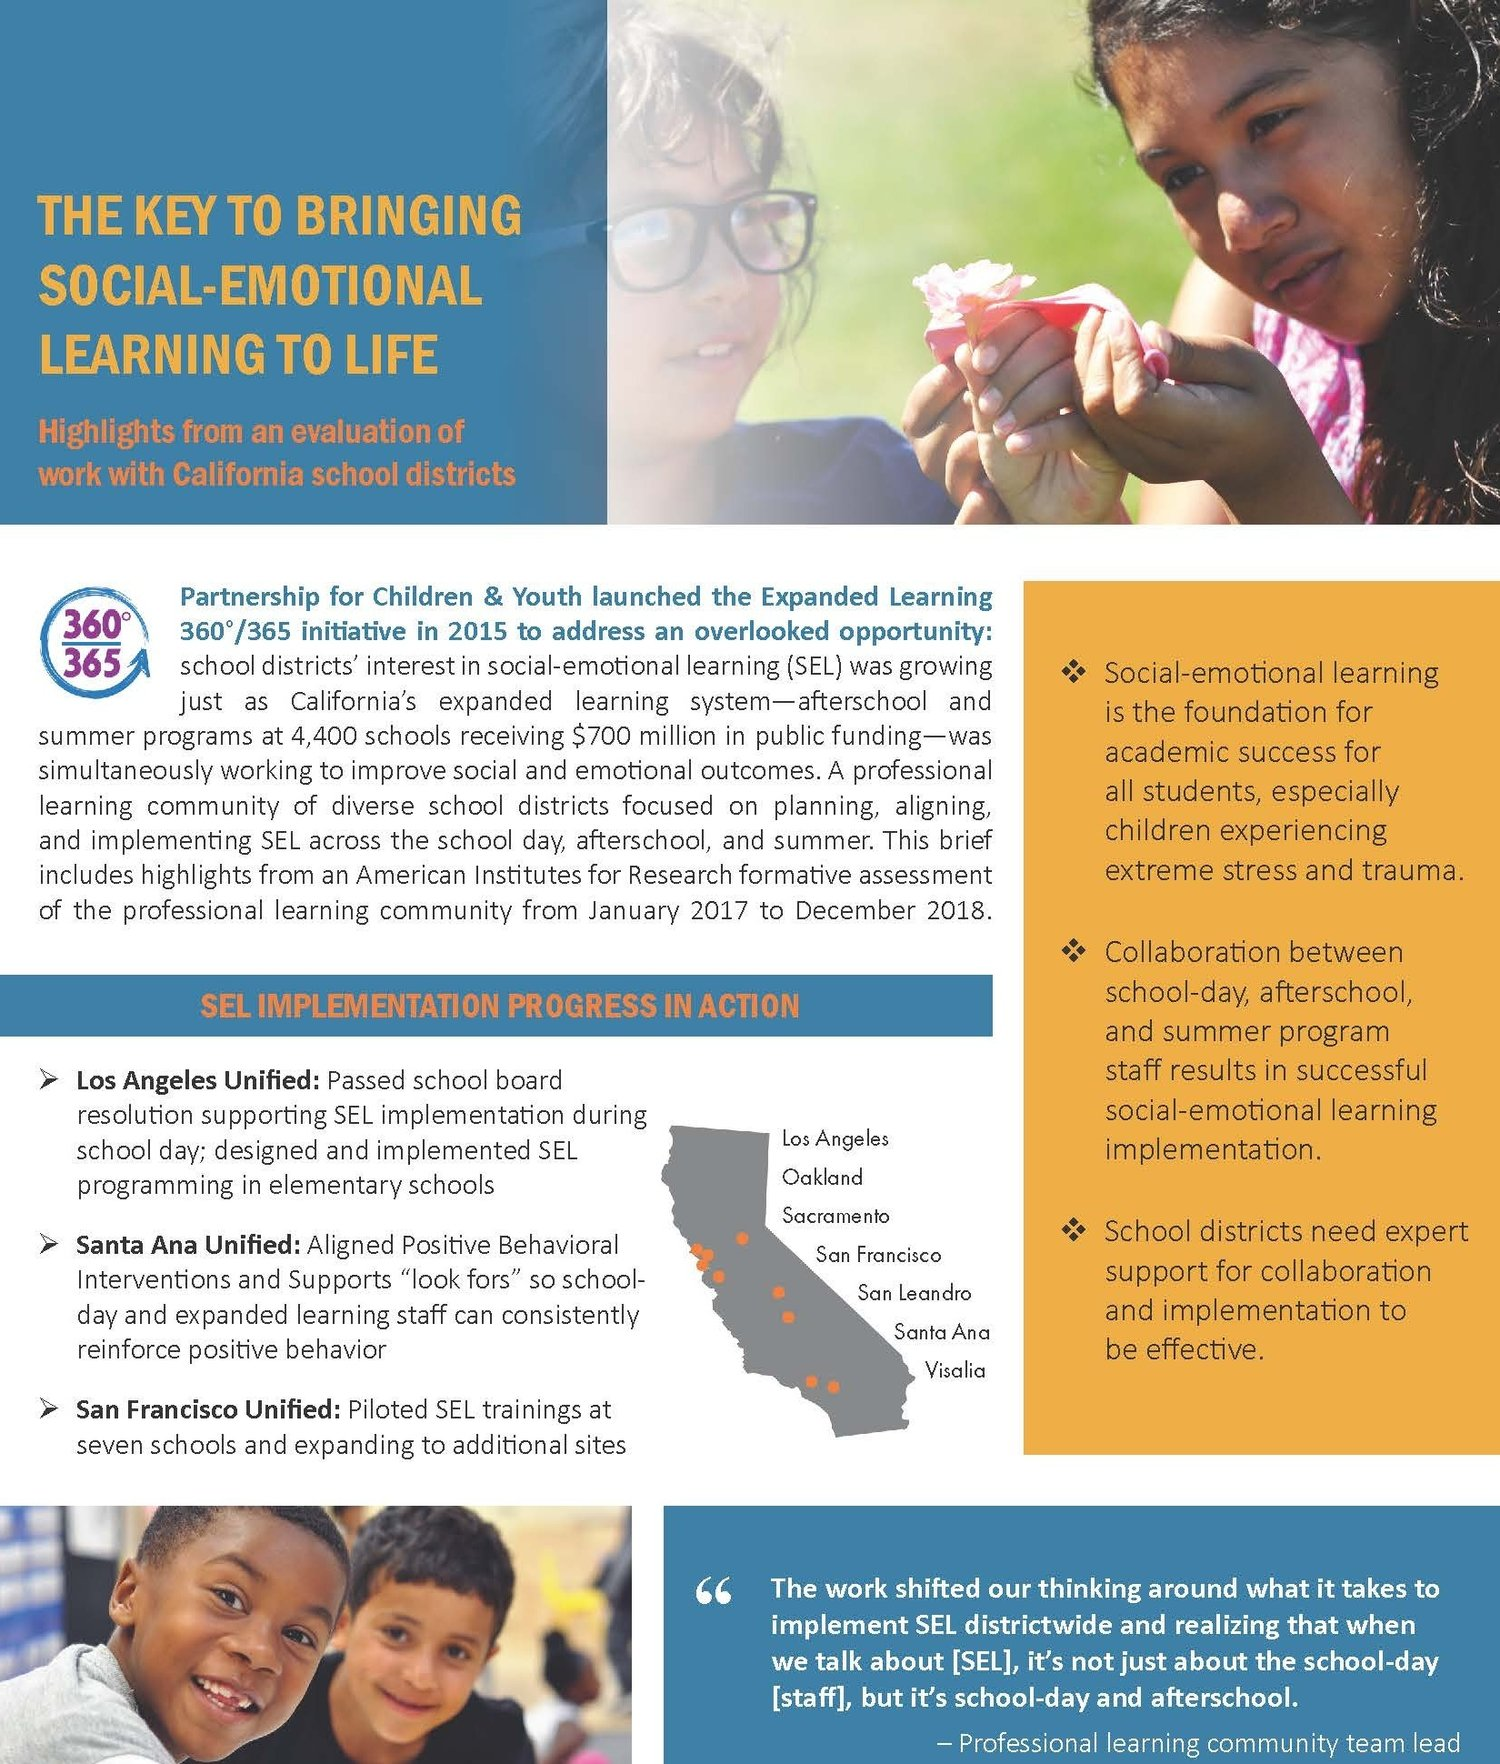 How To Implement Social And Emotional >> The Key To Bringing Social Emotional Learning To Life Partnership